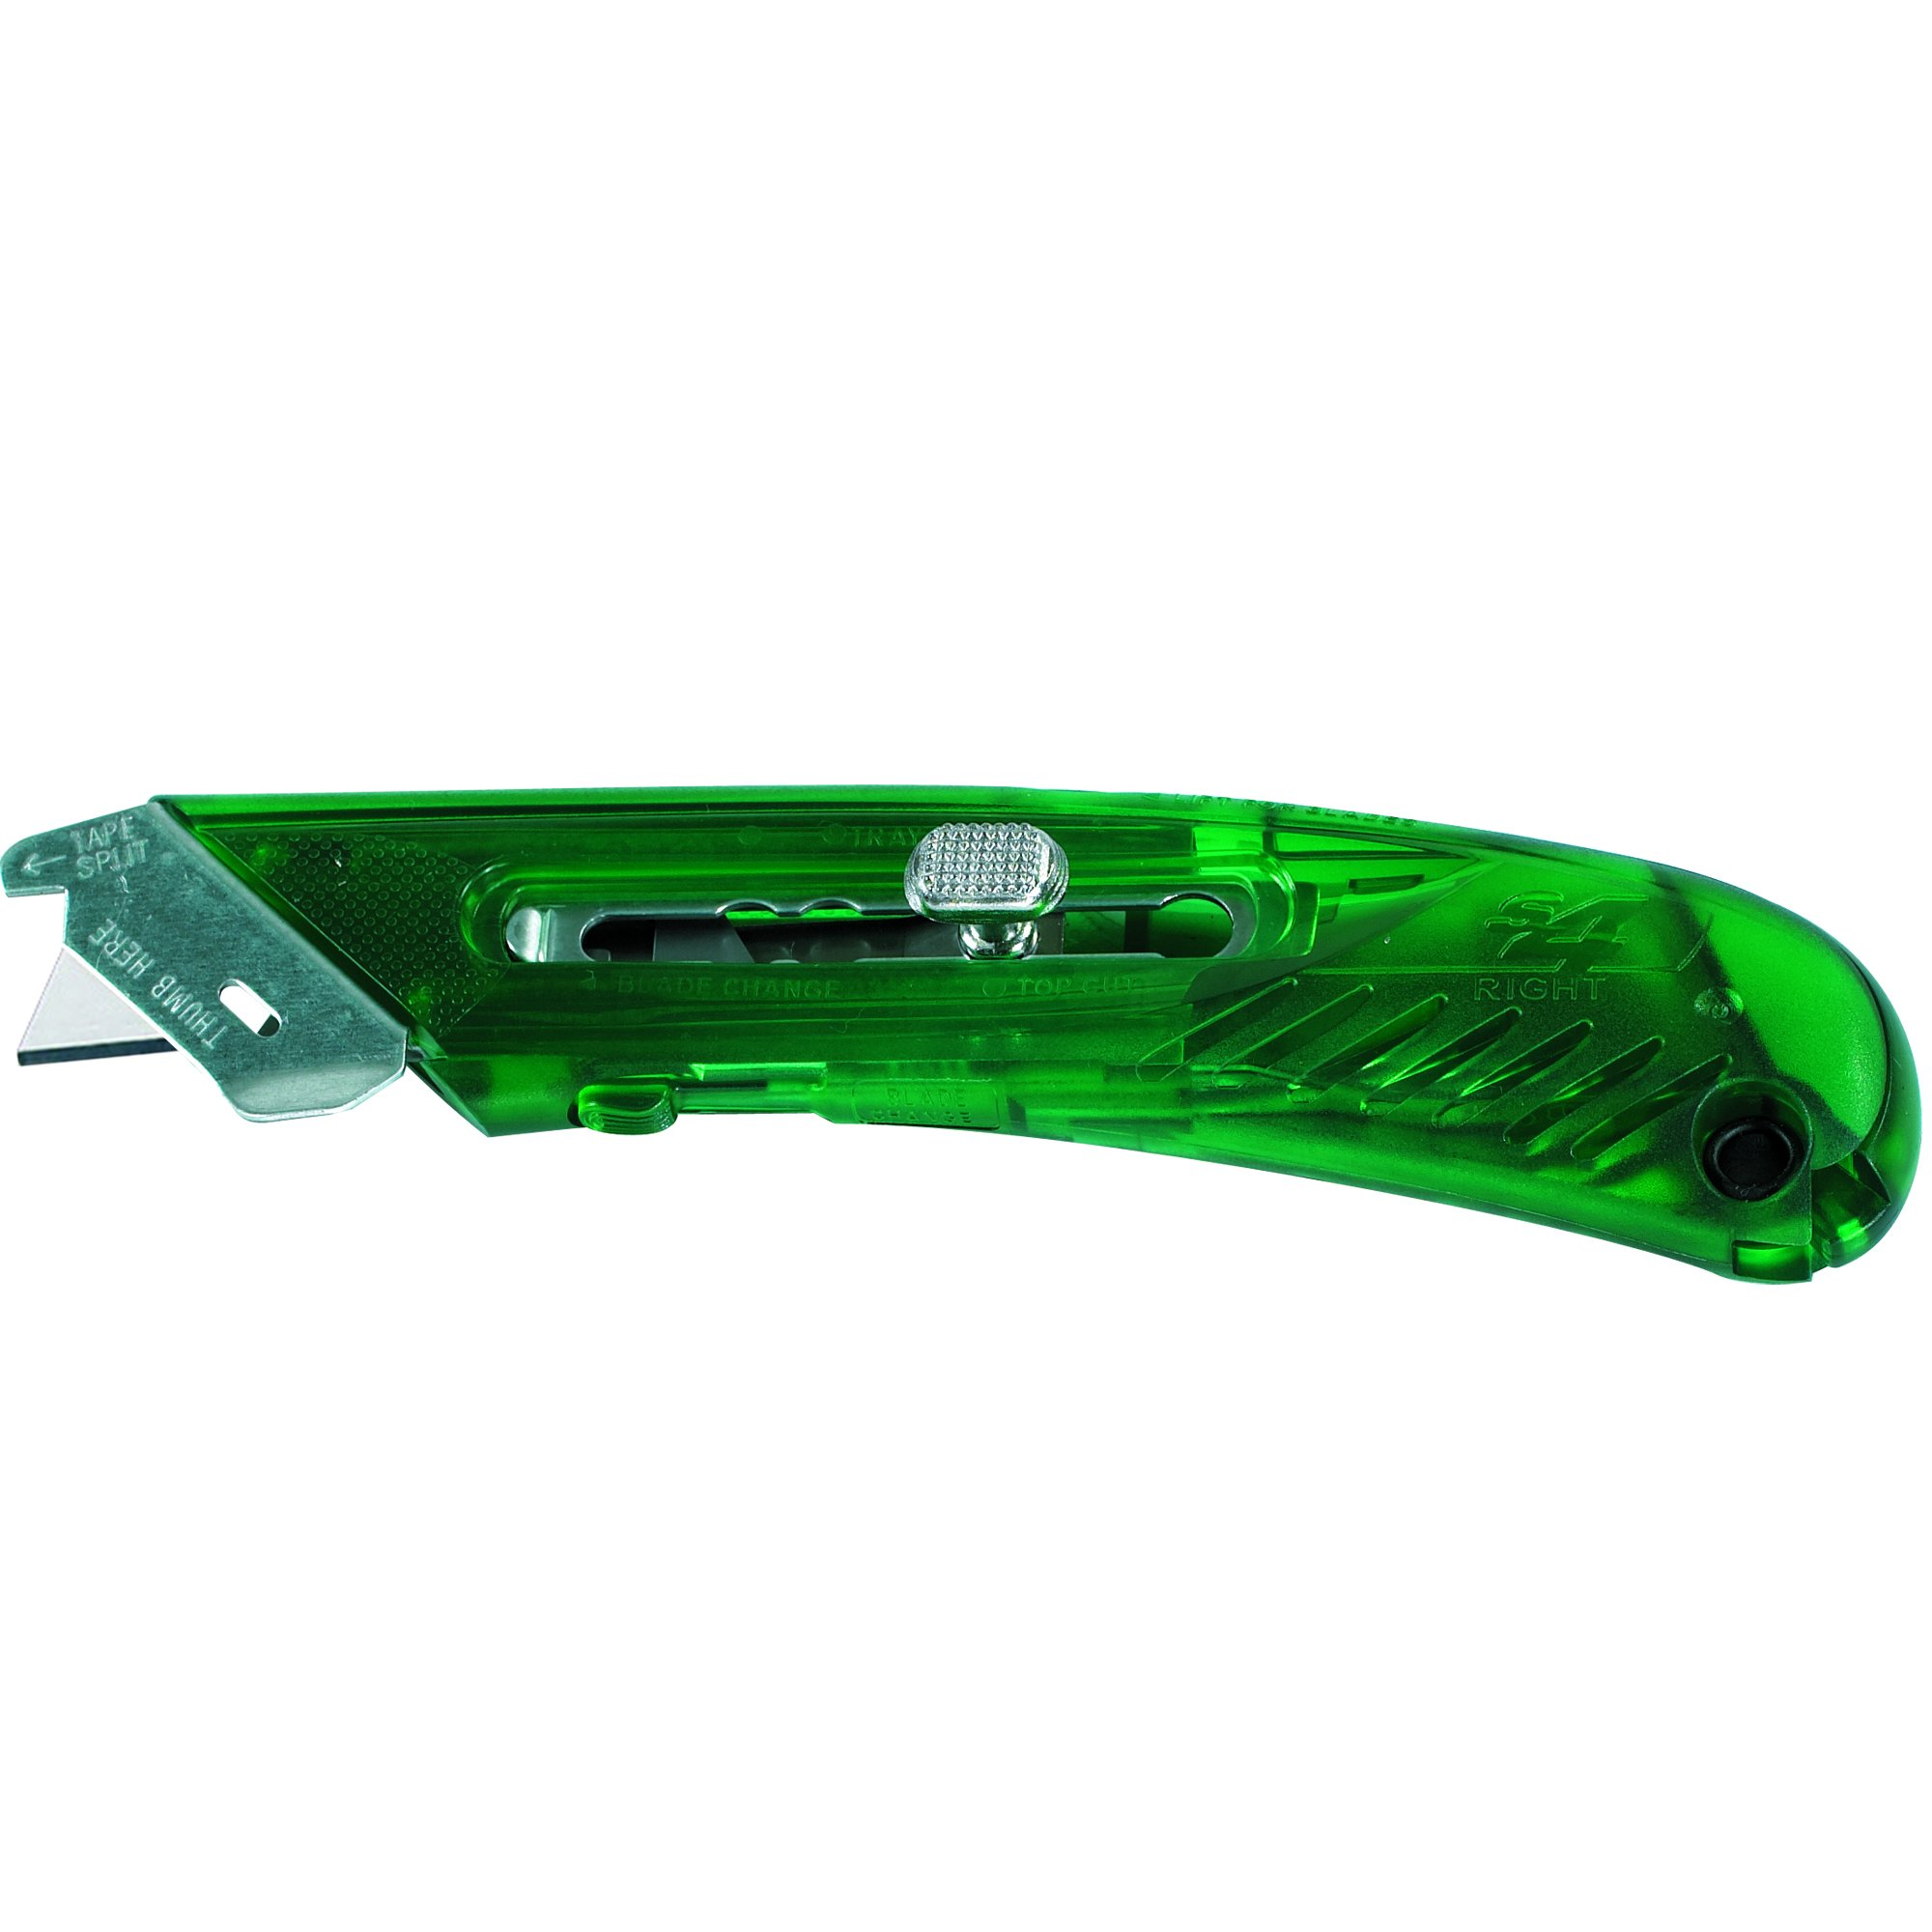 BOX USA BKN116 1 S4 Safety Cutter Utility Knife, Right Handed, Green (Pack of 12)